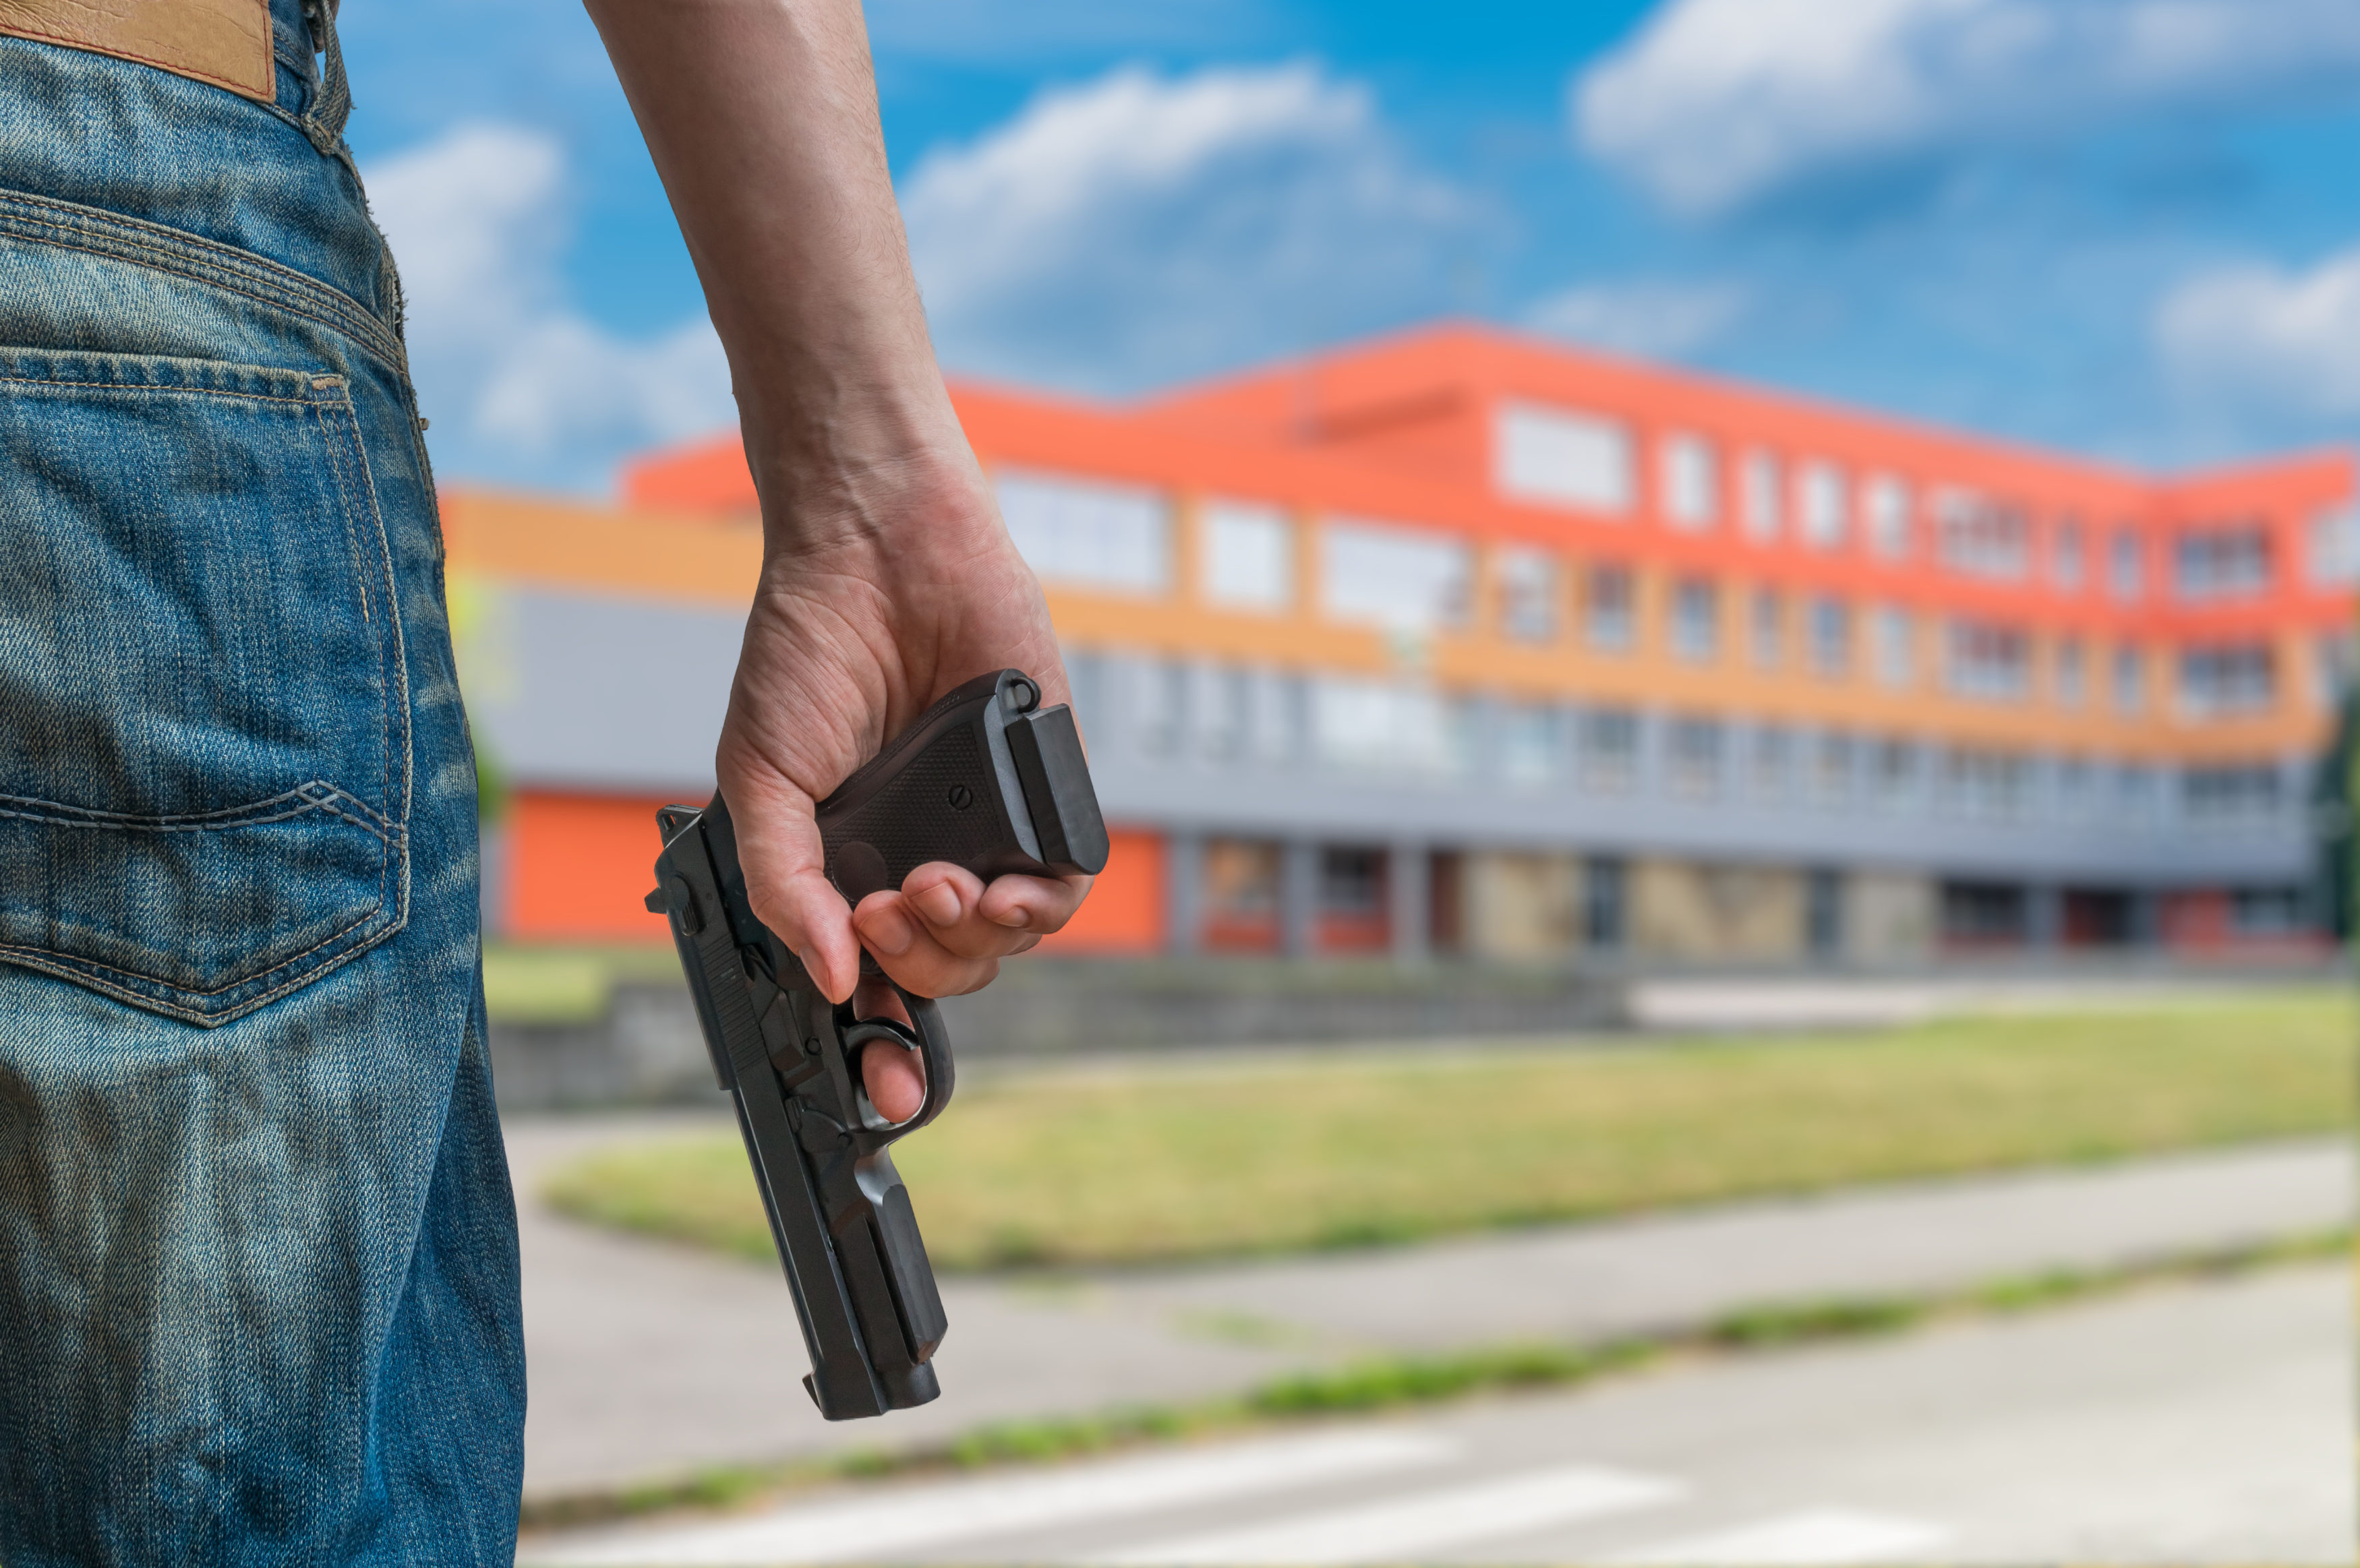 Gun control concept. Young armed man holds pistol in hand in public place near high school.